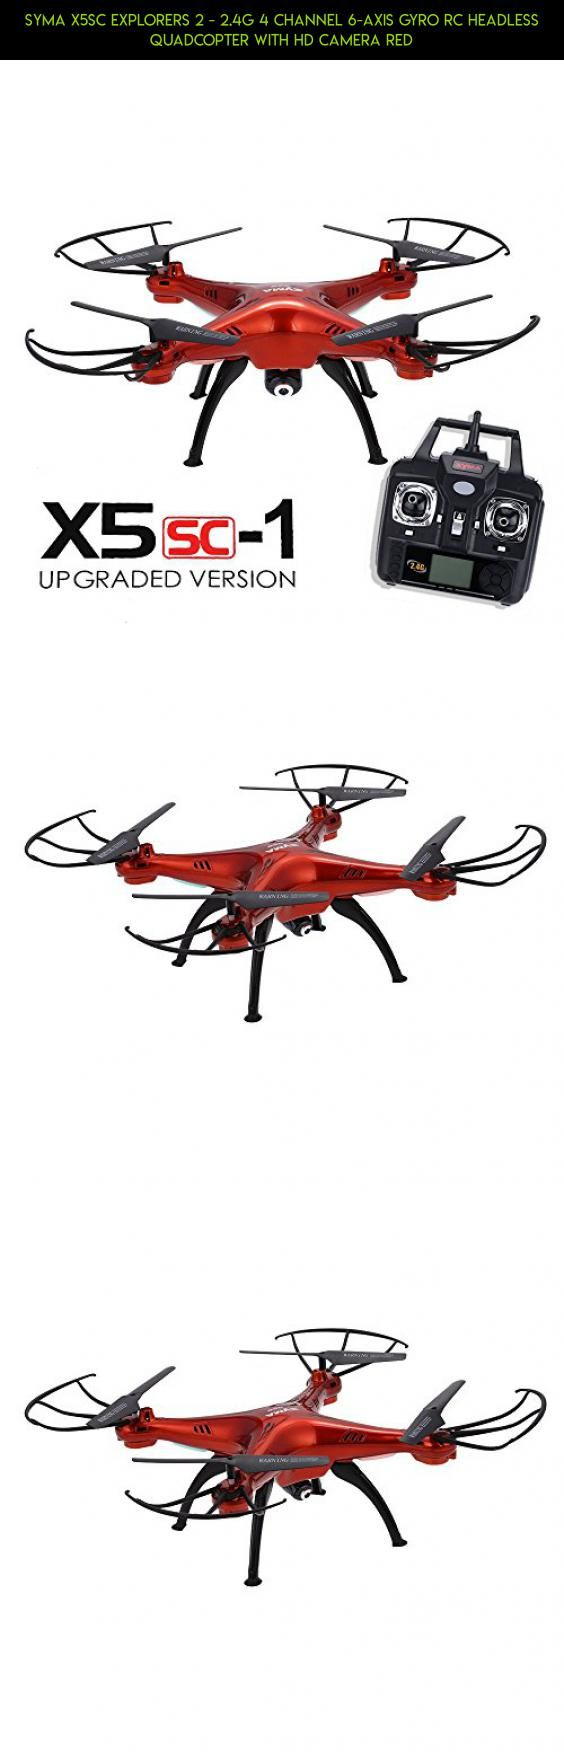 Syma X5SC Explorers 2 - 2.4G 4 Channel 6-Axis Gyro RC Headless Quadcopter With HD Camera Red #drone #plans #control #2.4g #wi-fi #x5sw #with #fpv #quadcopter #kit #gadgets #products #tech #parts #camera #racing #shopping #remote #camera #technology #syma